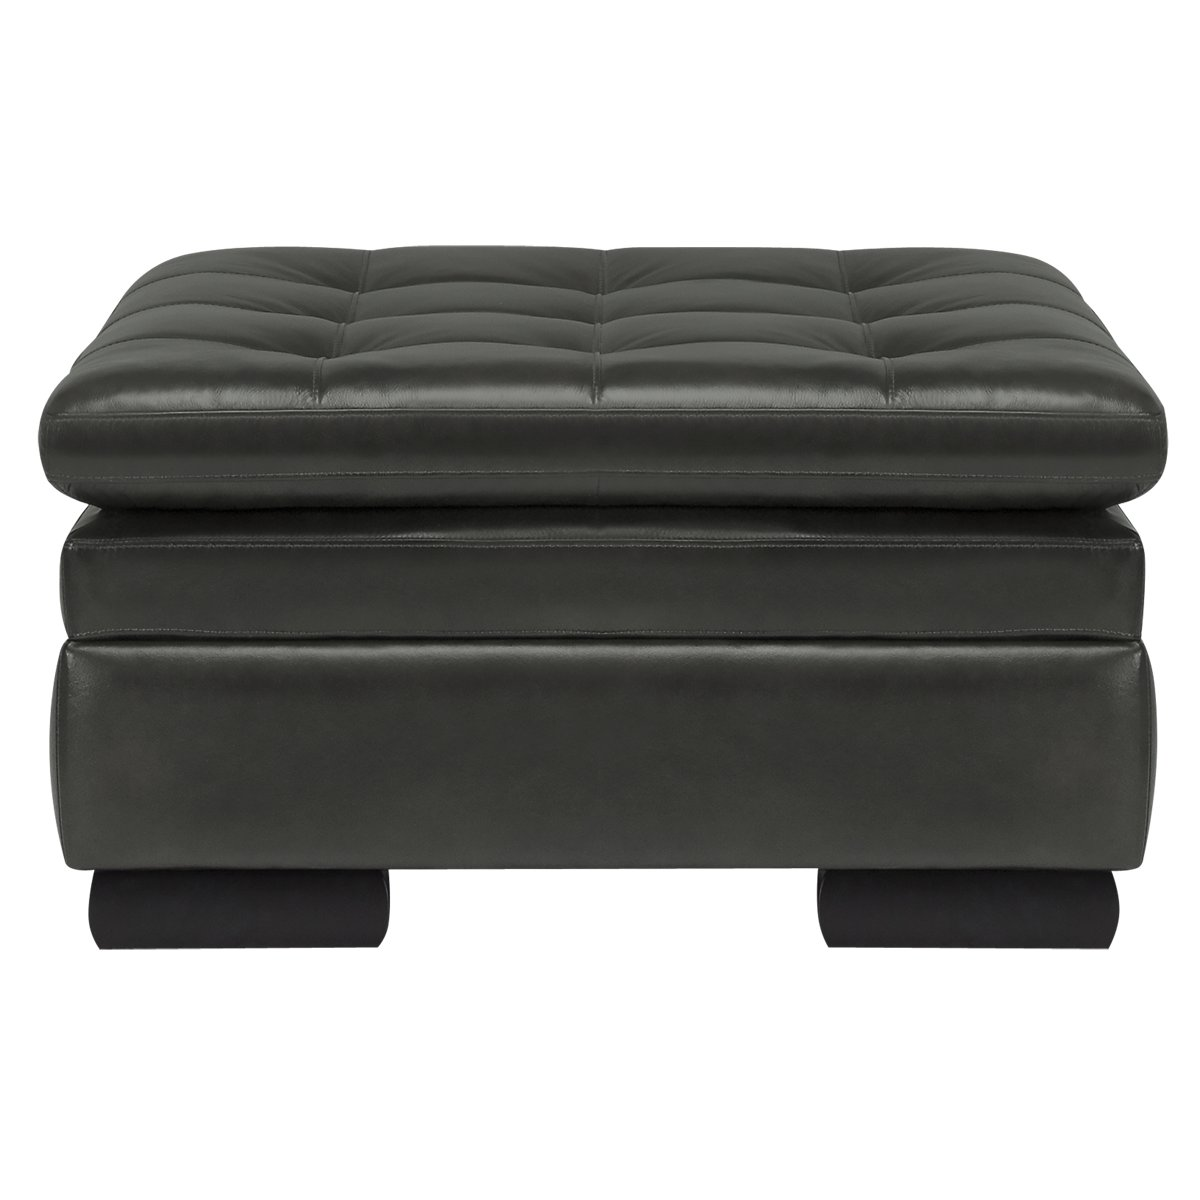 Trevor Dark Gray Leather Storage Ottoman